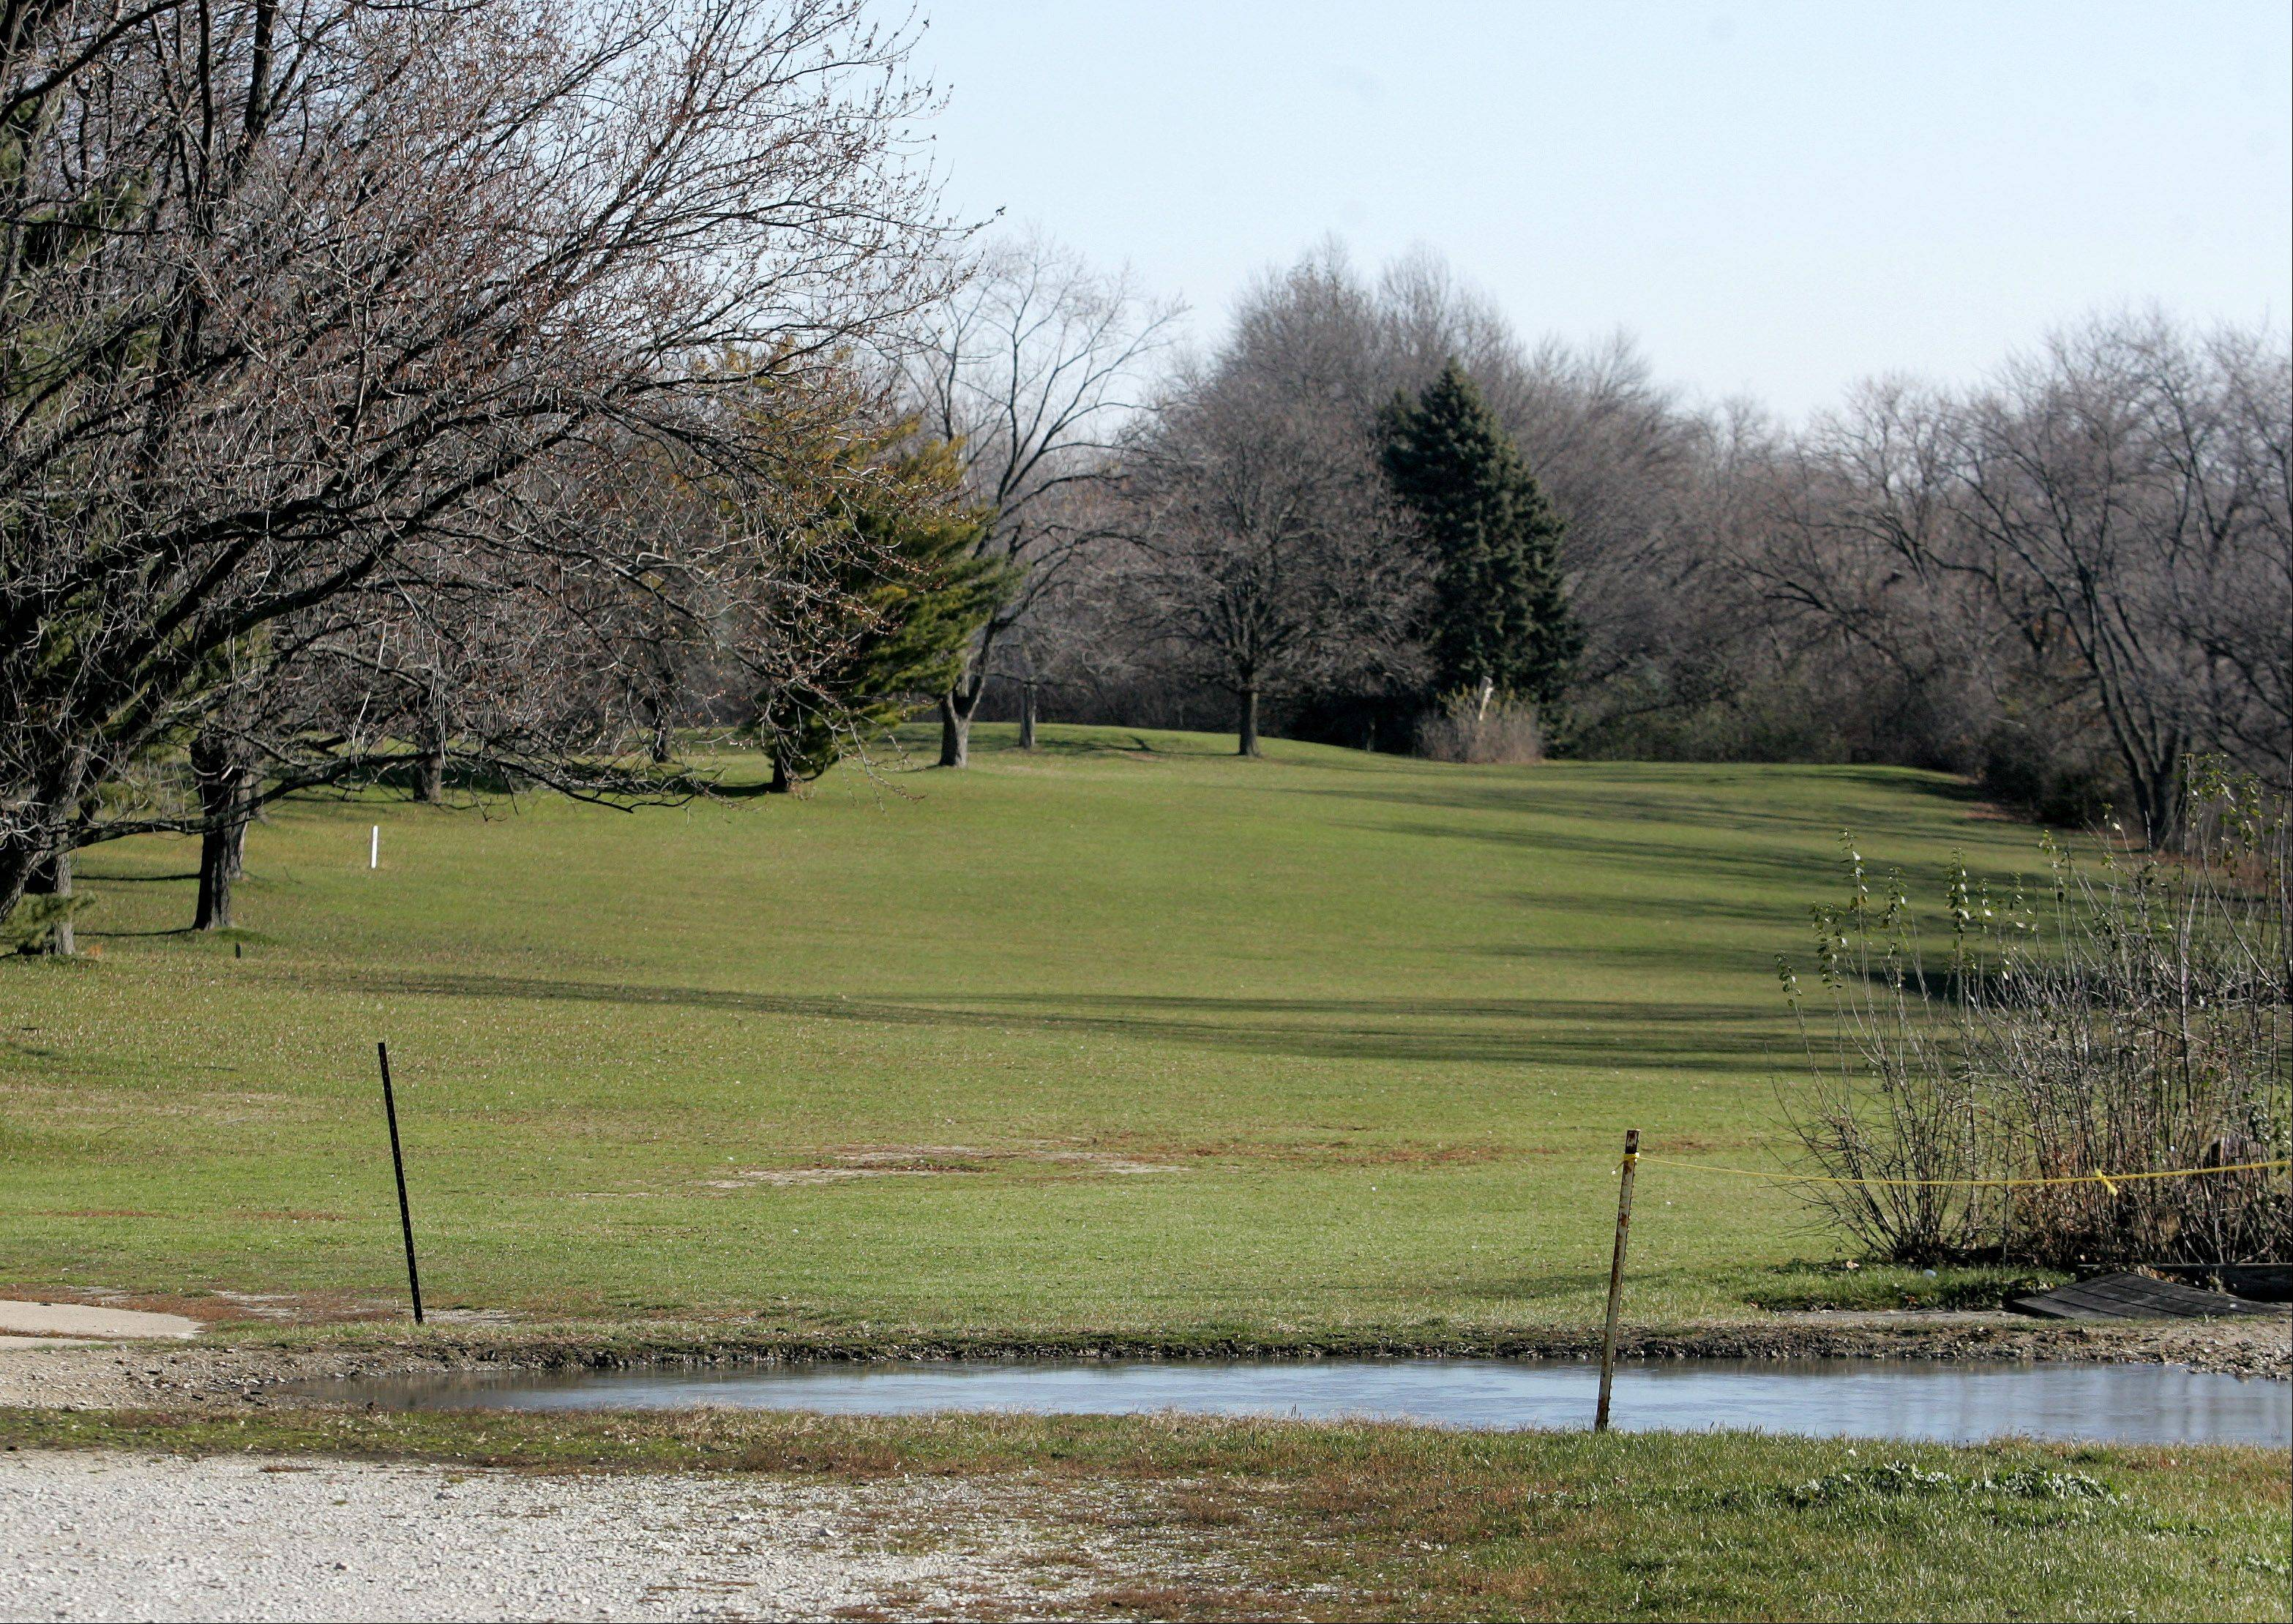 The Ken-Loch Golf Links property in an unincorporated area near Lombard is for sale, and a developer looking to buy it wants to build apartments and townhouses.